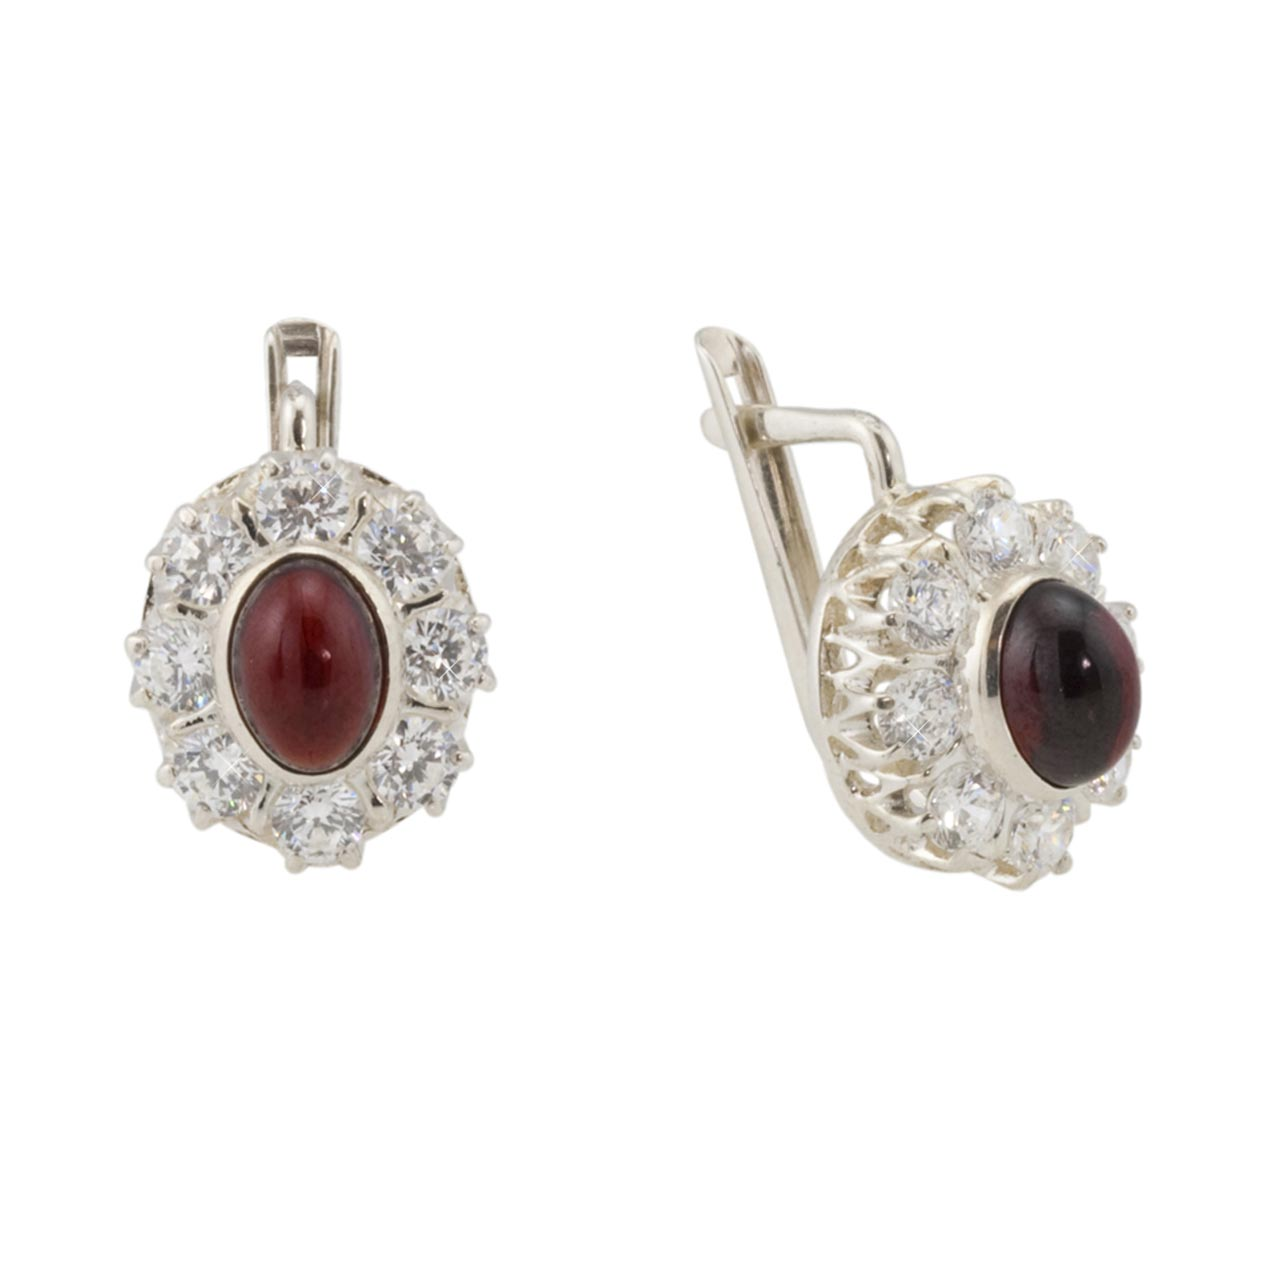 Halo Silver Earrings: A Garnet